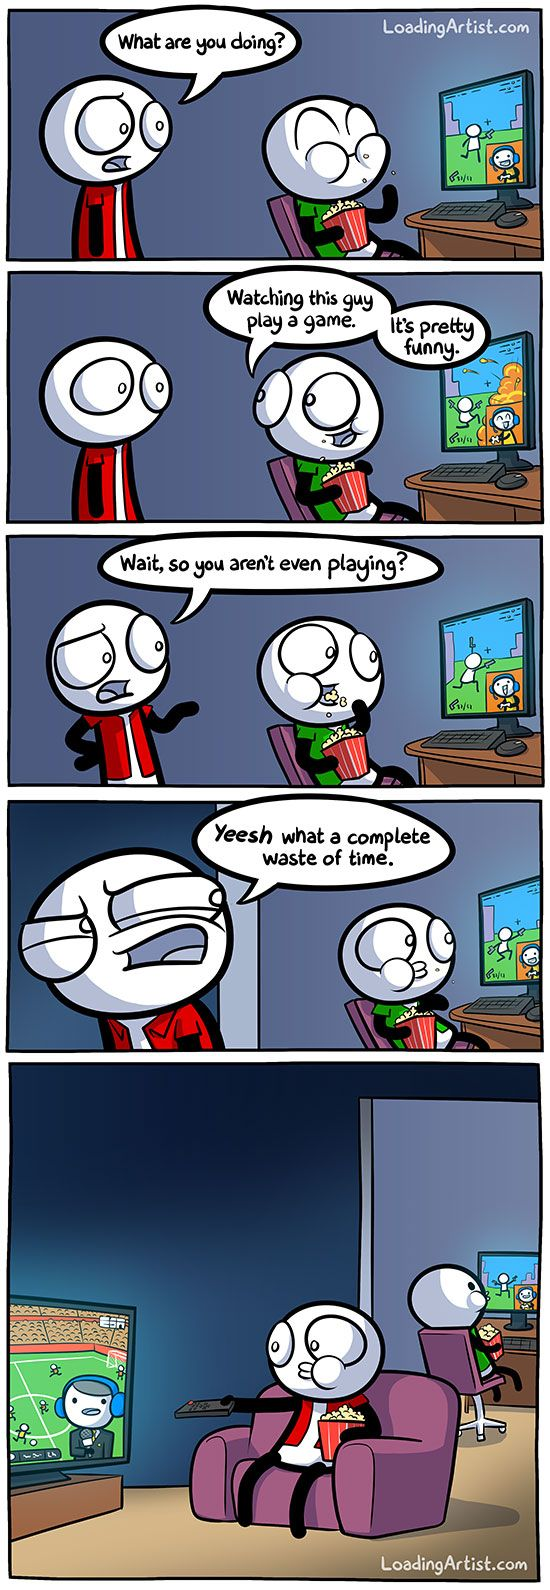 Twitch. Yeesh, what a waste of time.